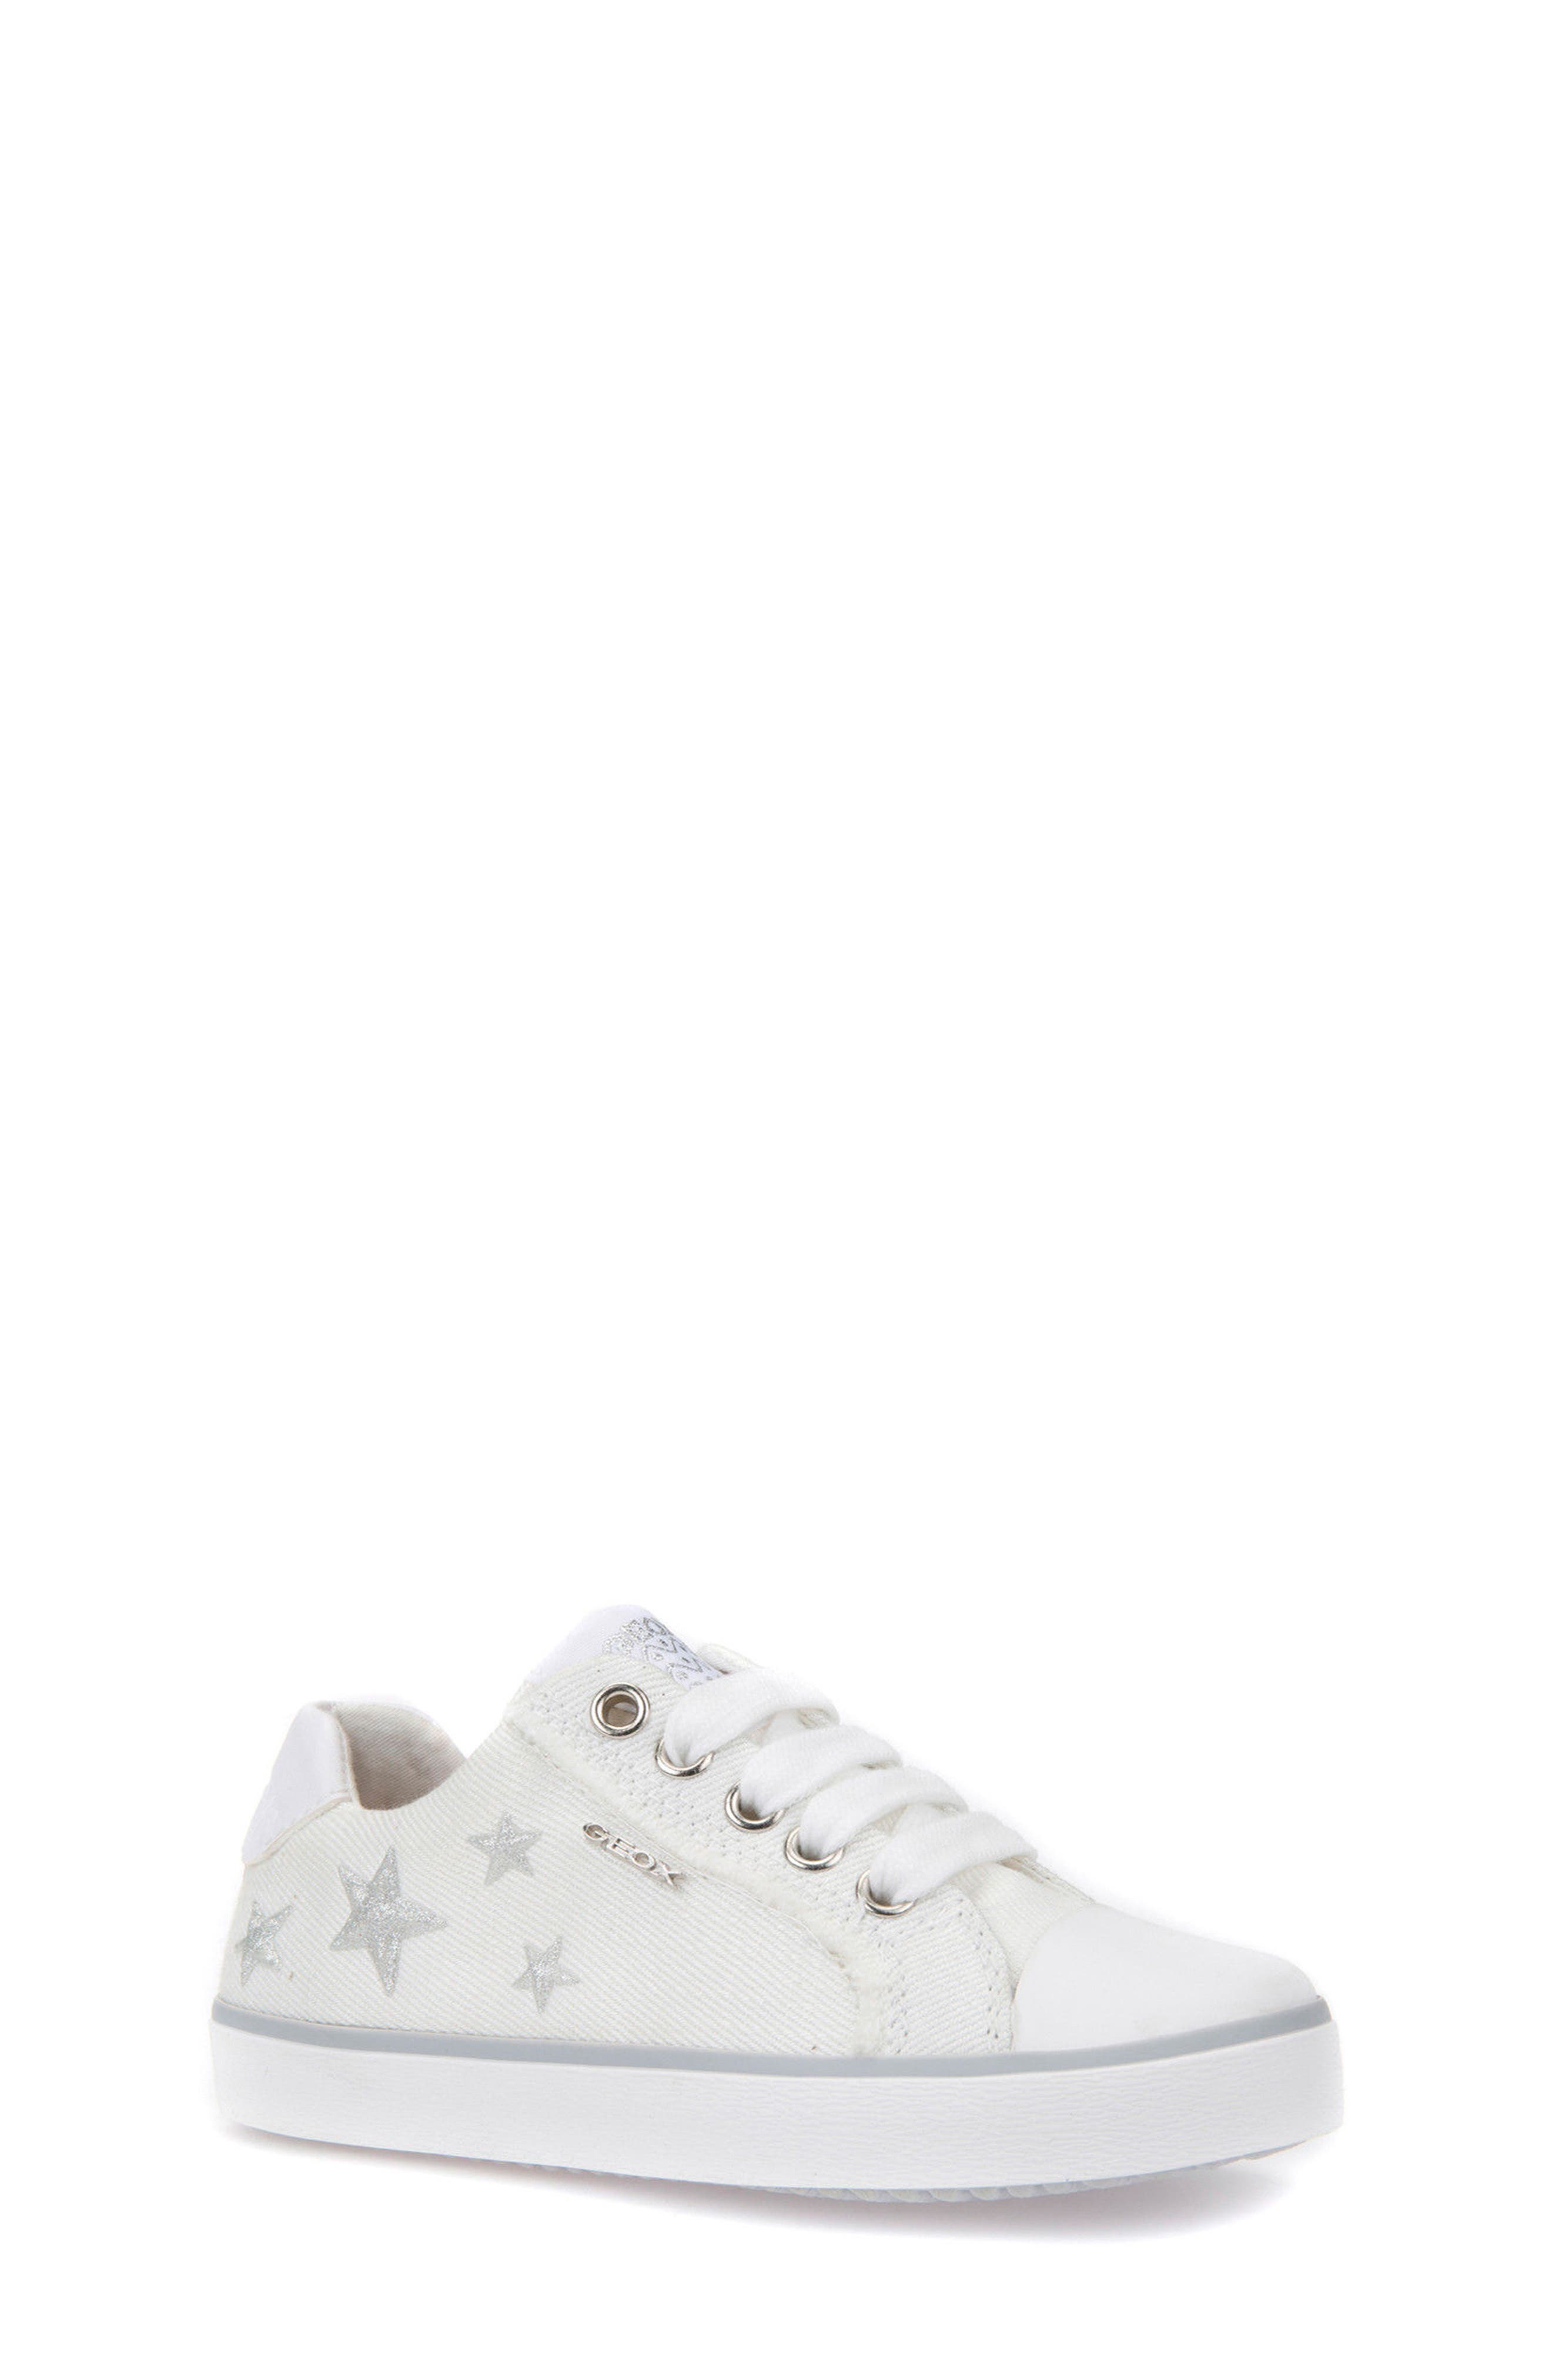 Kilwi Low Top Sneaker,                         Main,                         color, WHITE